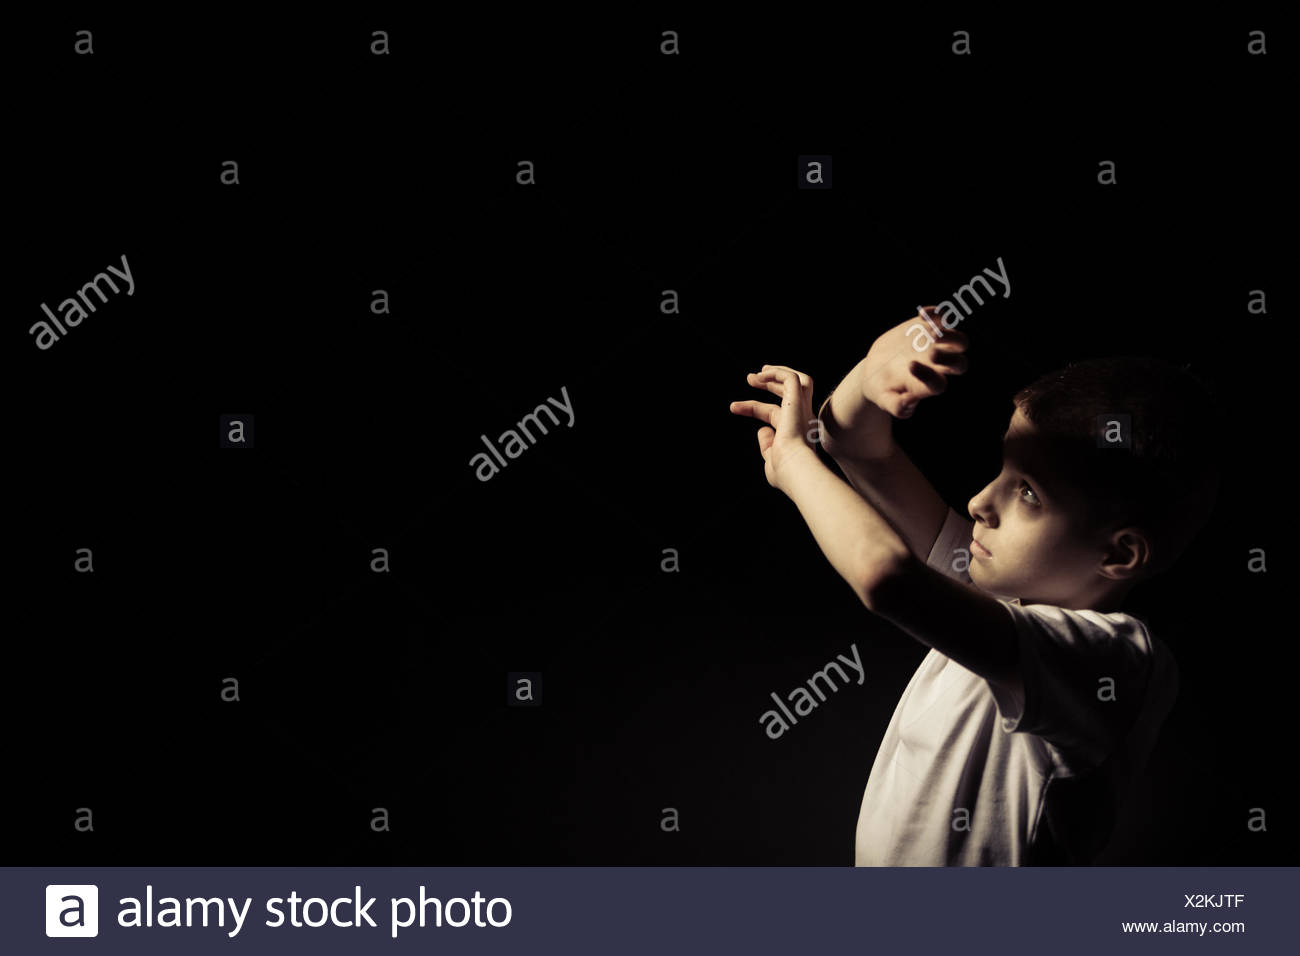 Boy Looking Up While Covering Light Against Black - Stock Image